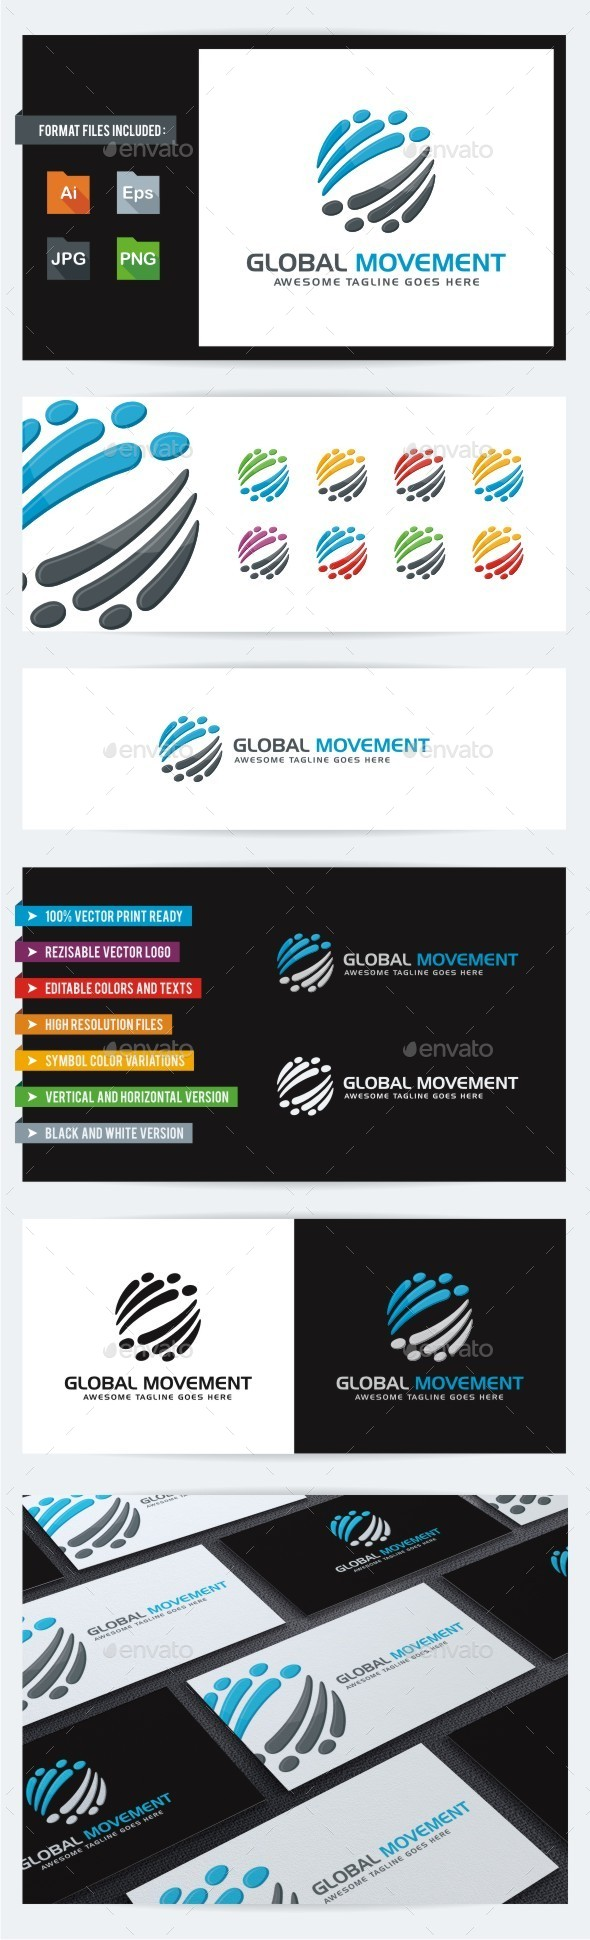 Global Movement - Vector Abstract